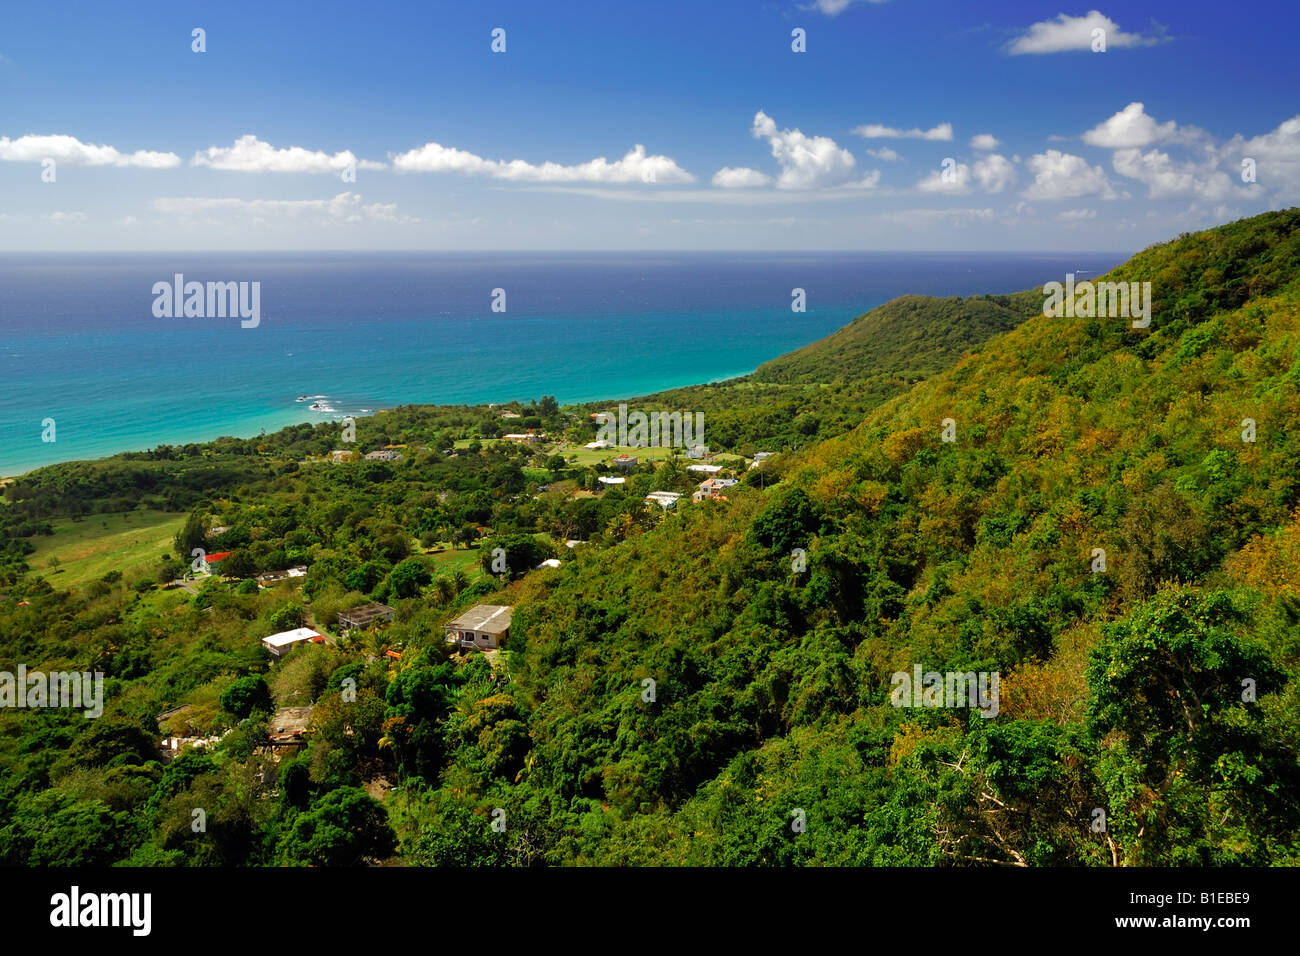 View onto the coast at Punta Yeguas and the south east Caribbean Sea near Maunabo, Puerto Rico - Stock Image